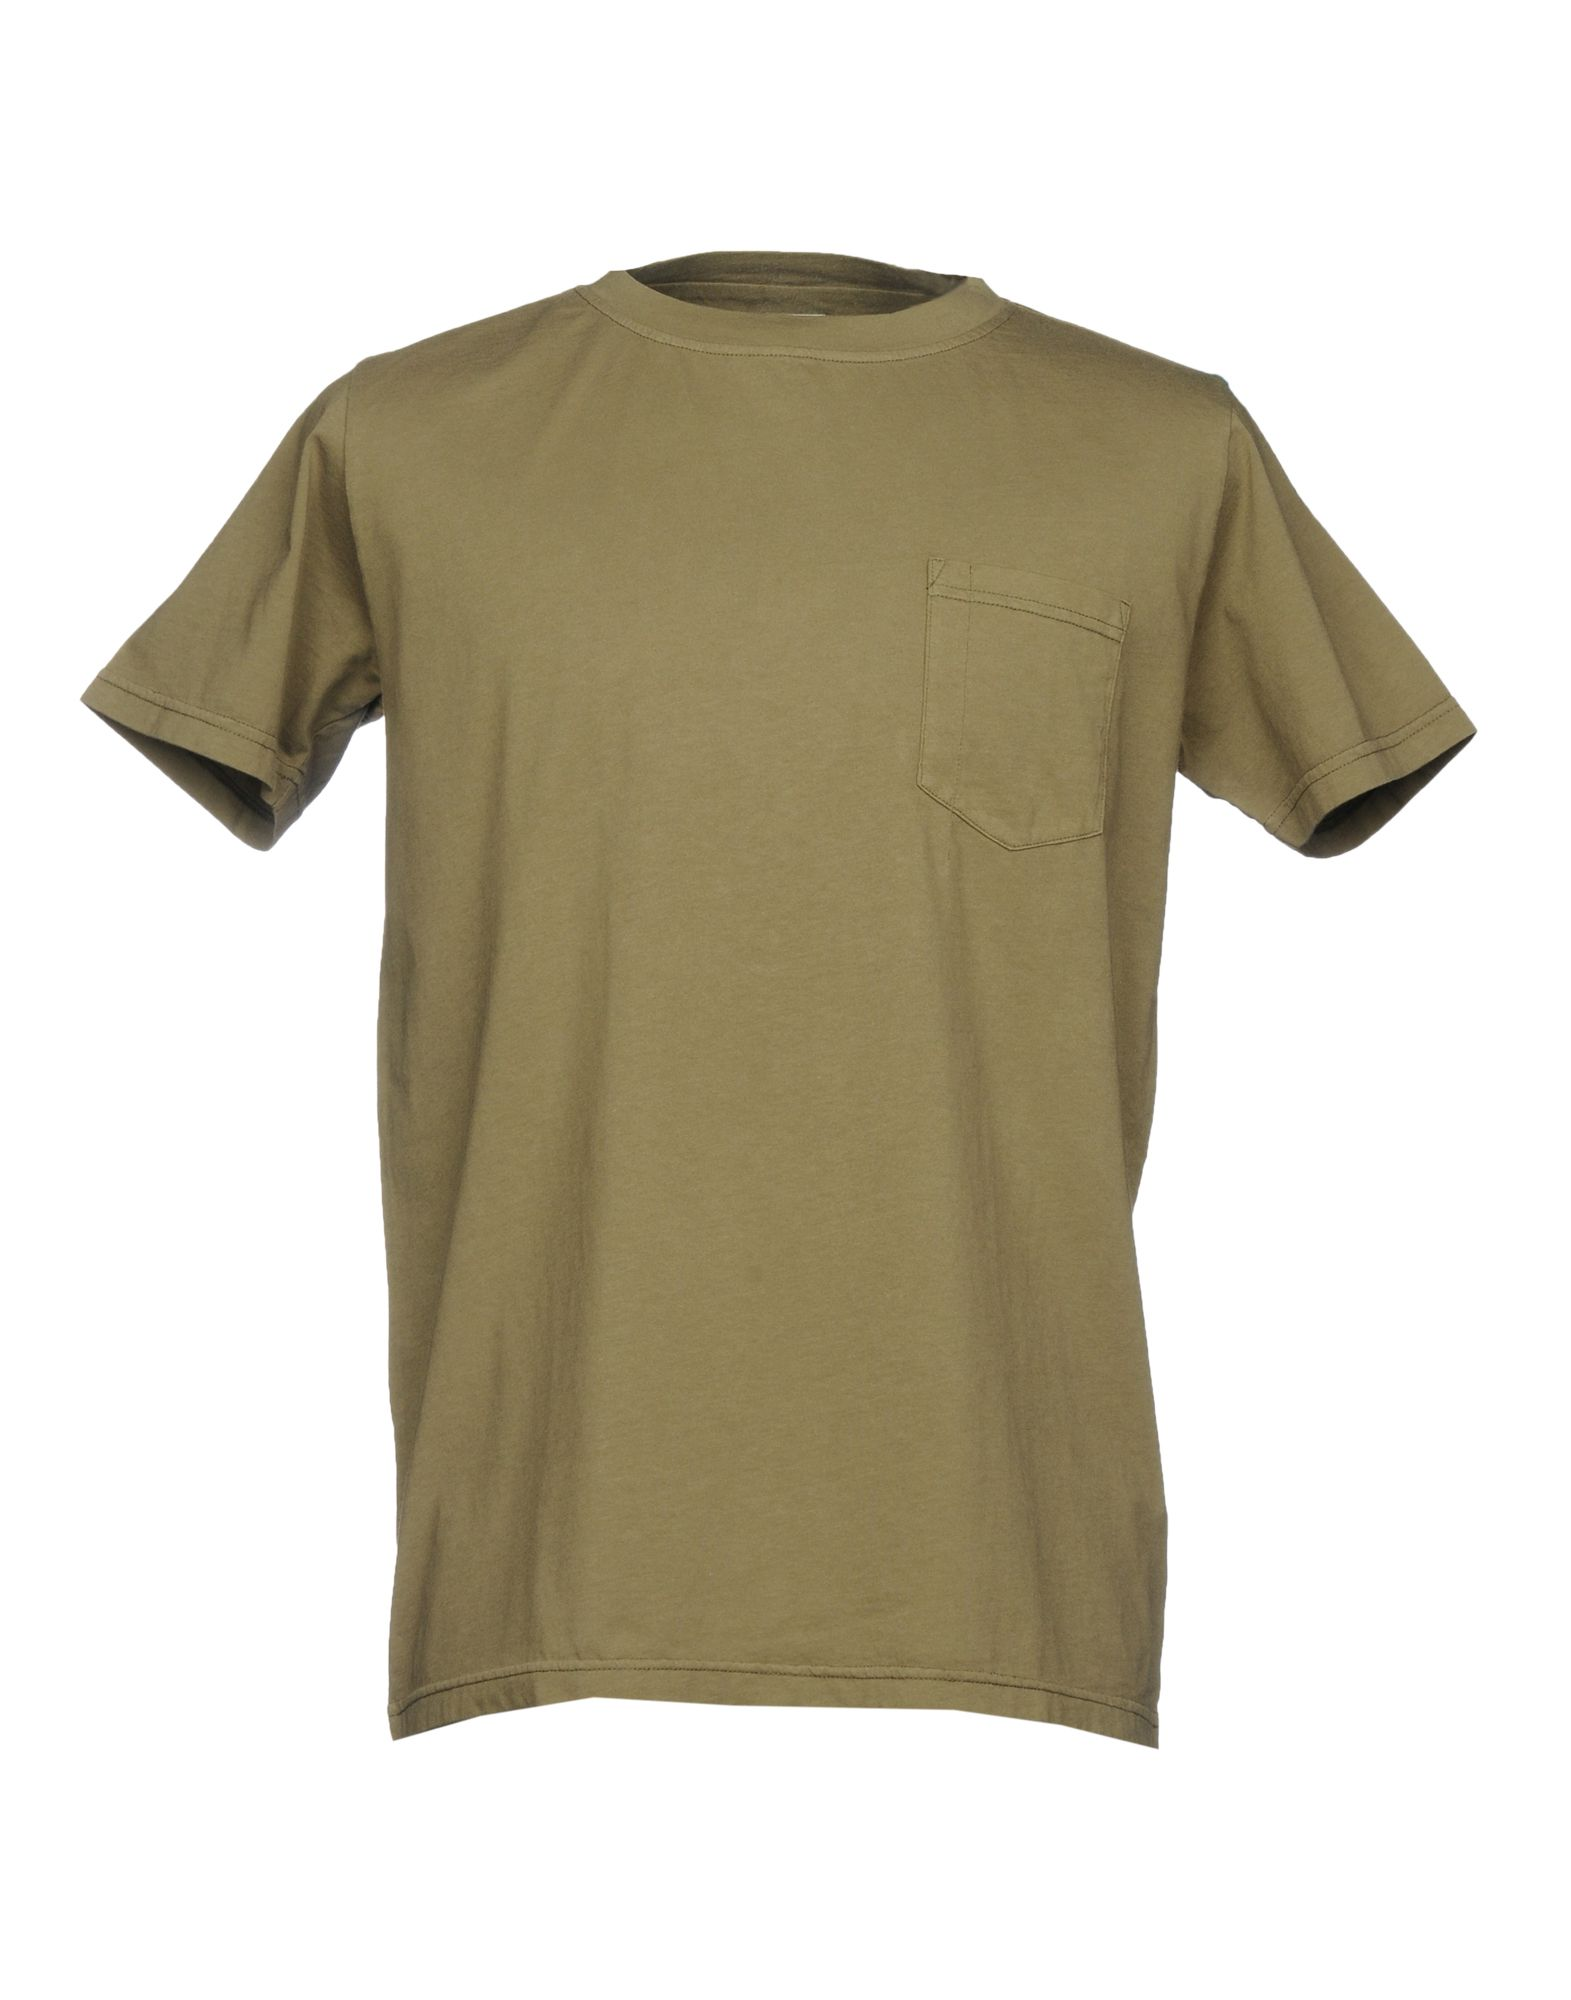 ALBAM T-Shirt in Military Green